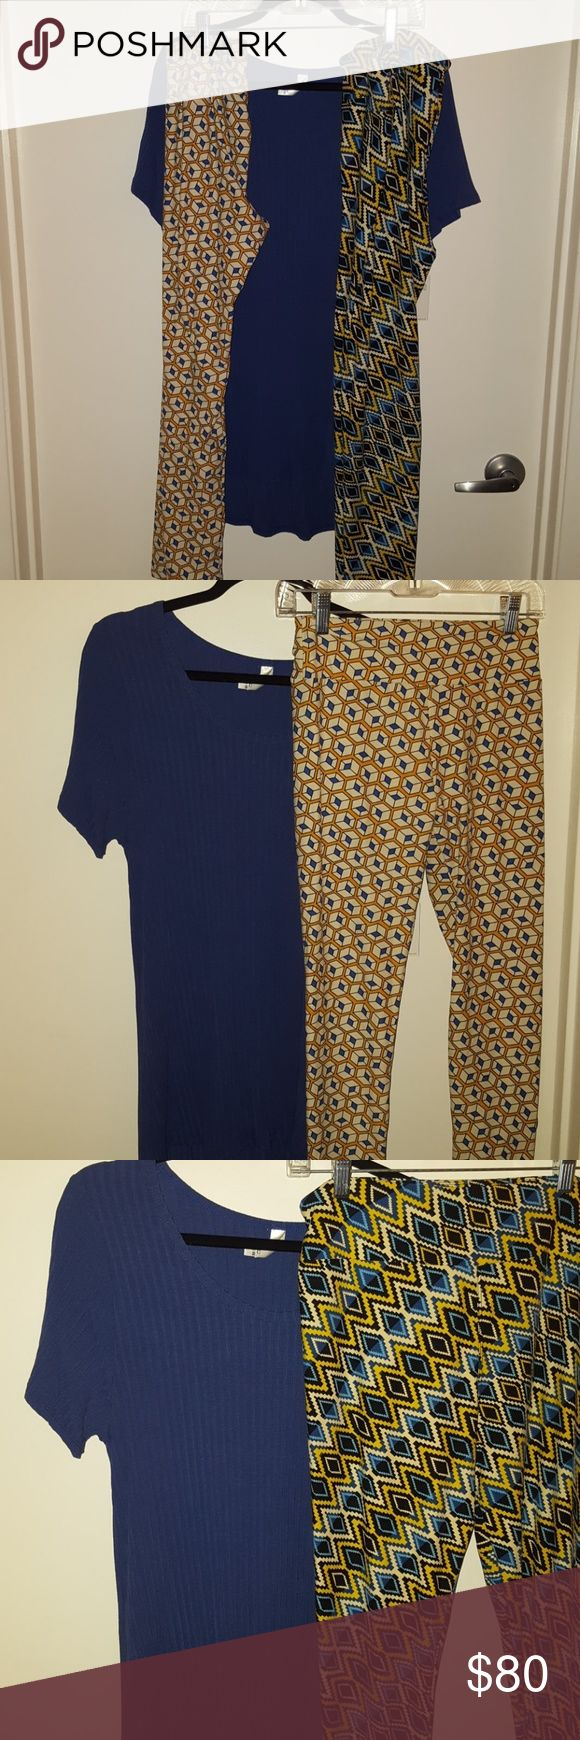 Lularoe outfit blue xl classic with two leggings Solid ribbed blue with one or two leggings. First pair is OS and second pair are TC. If you only want one or the other please let me know LuLaRoe Tops